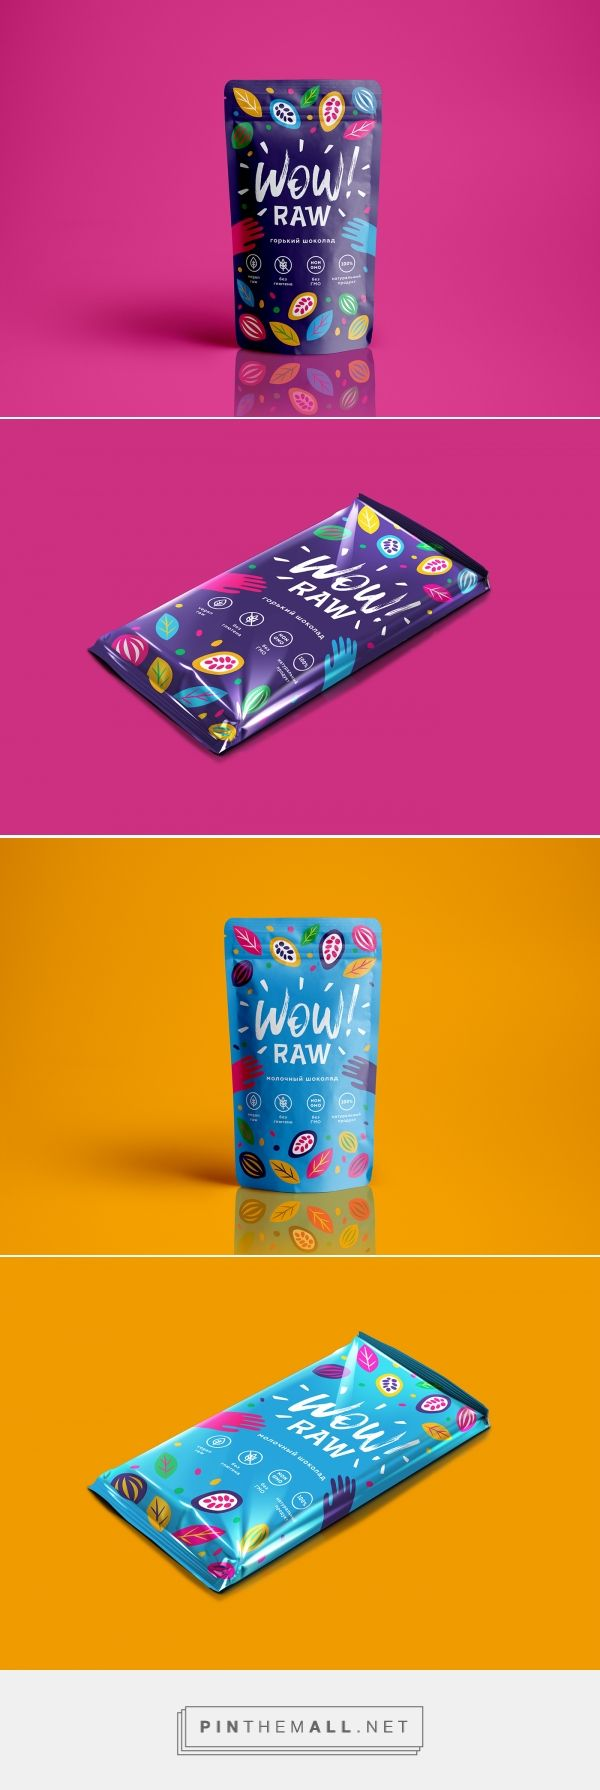 Wow raw chocolate by Vivien Morokhina. Source: Behance. Pin curated by #SFields99 #packaging #design #inspiration #ideas #innovation #branding #product #chocolate